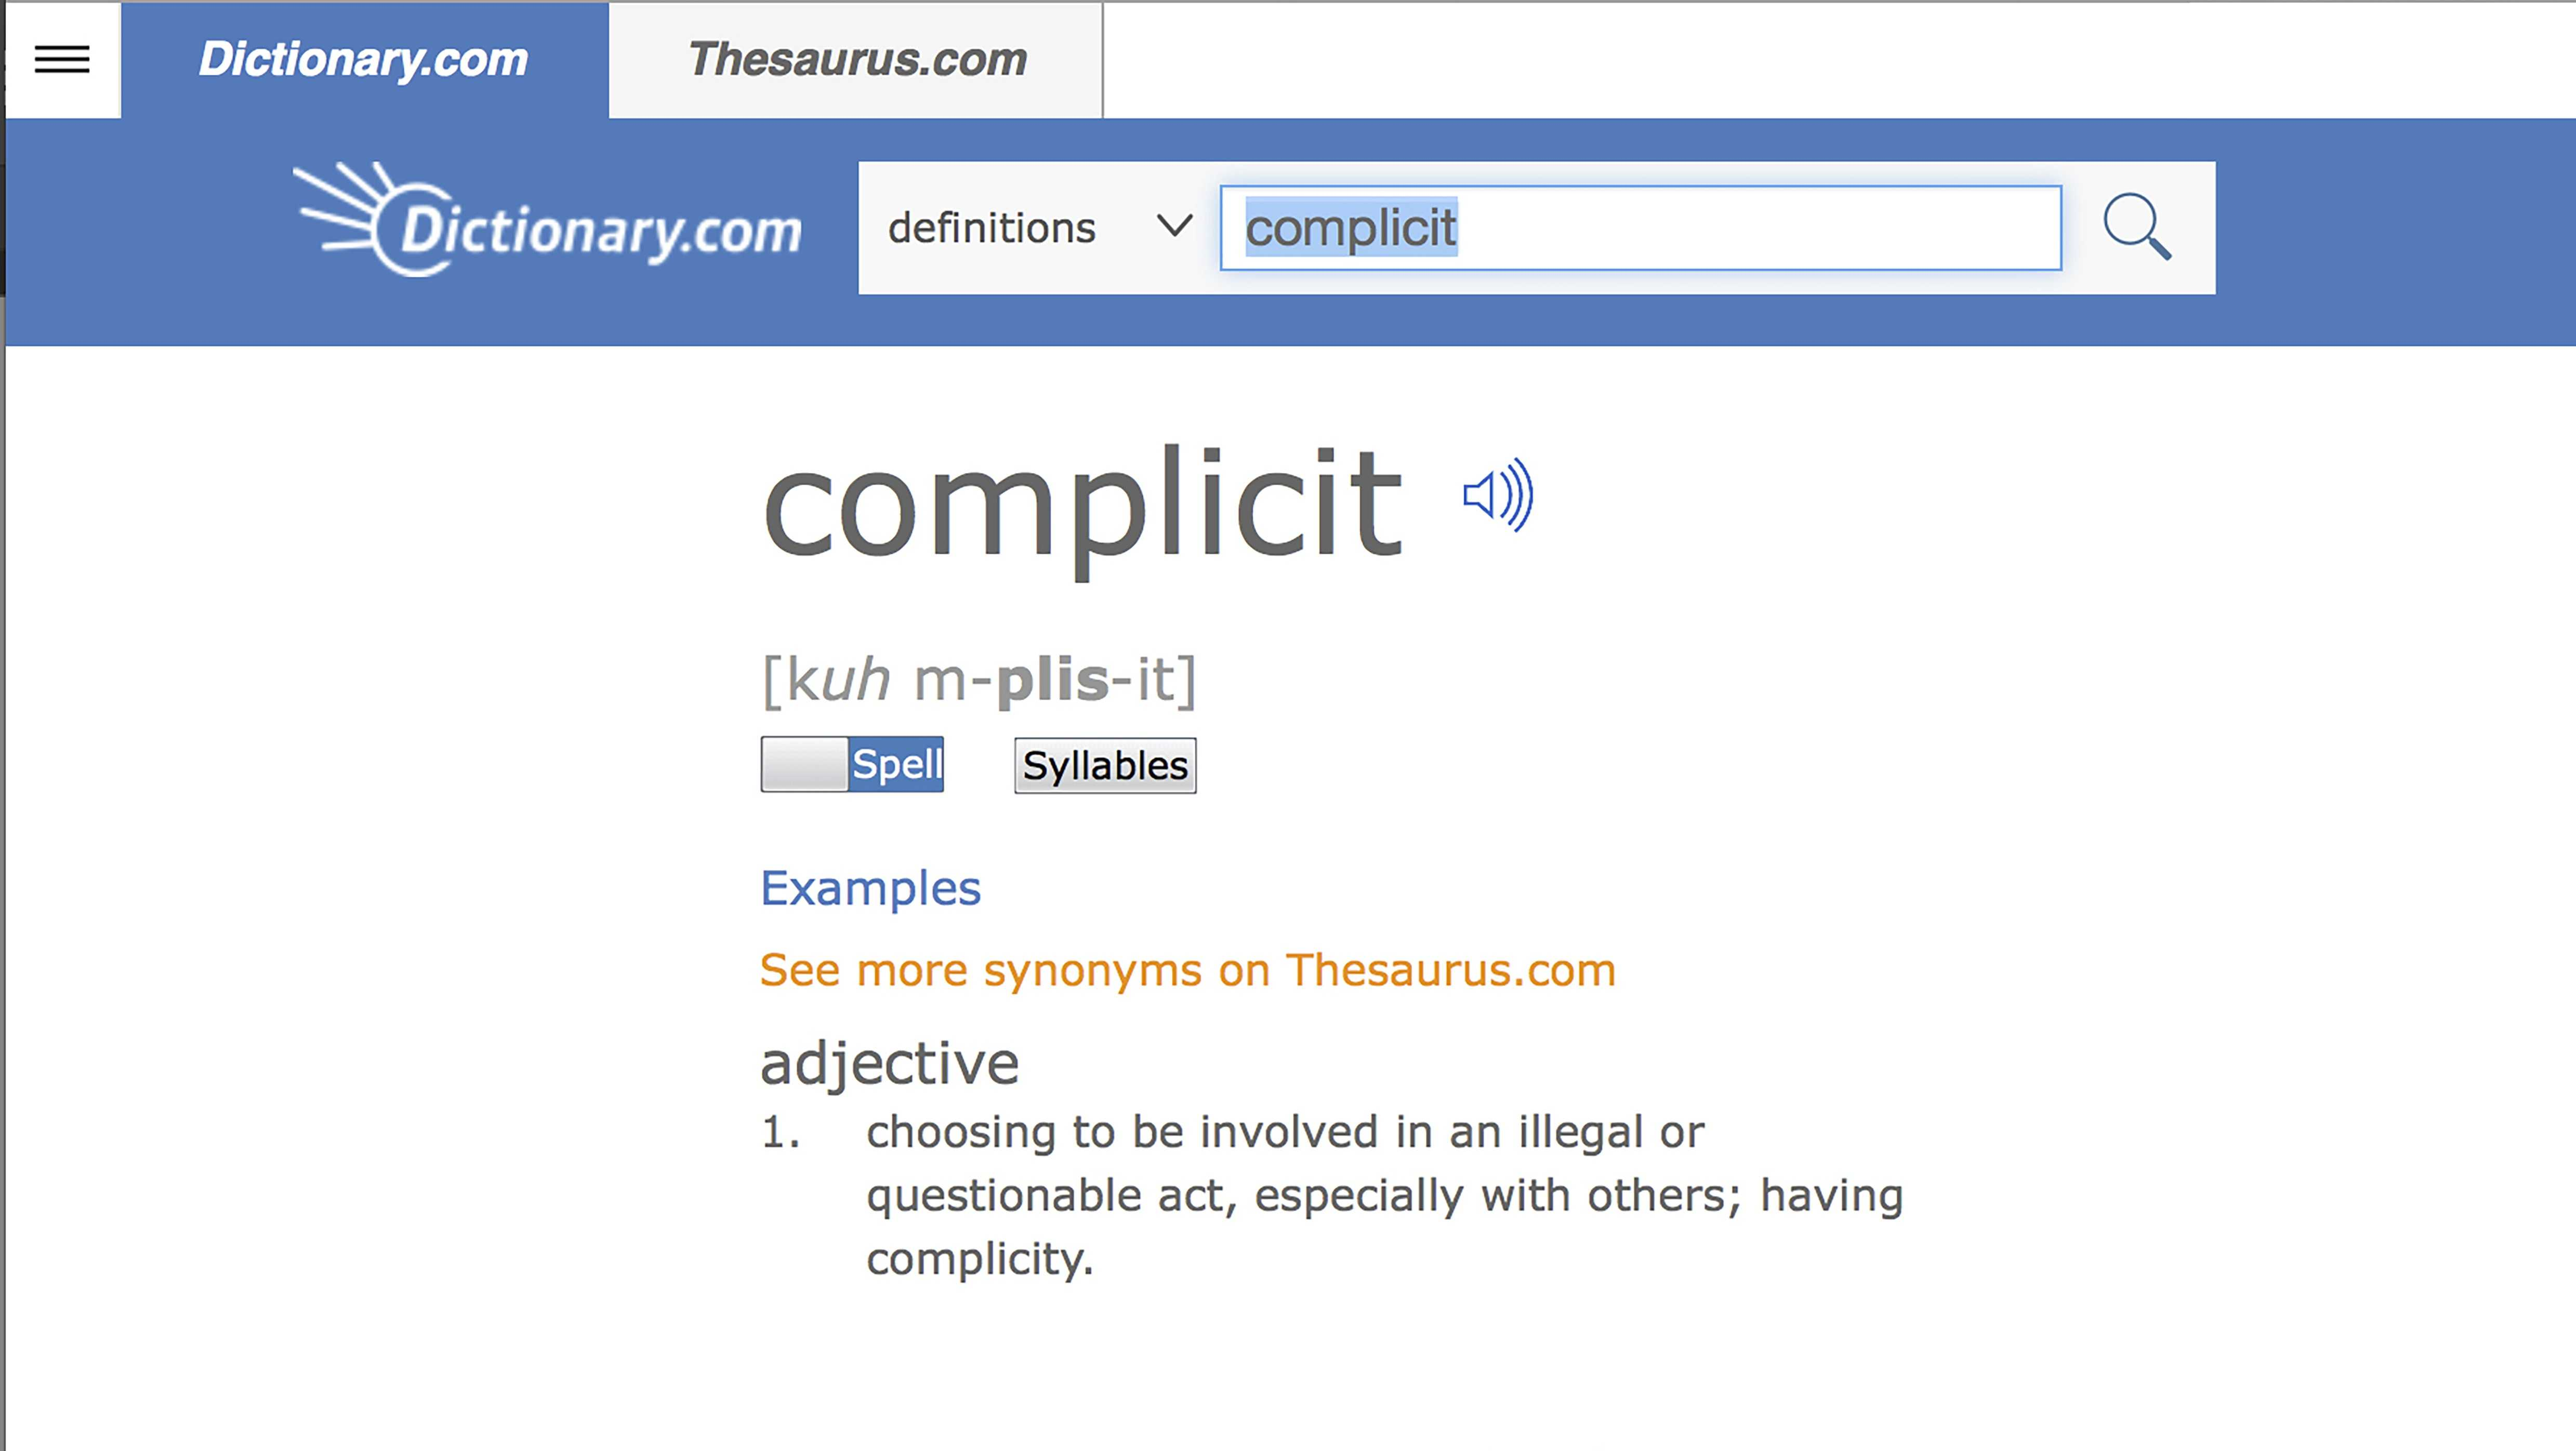 Dictionary.com's 2017 Word of the Year - 'complicit'